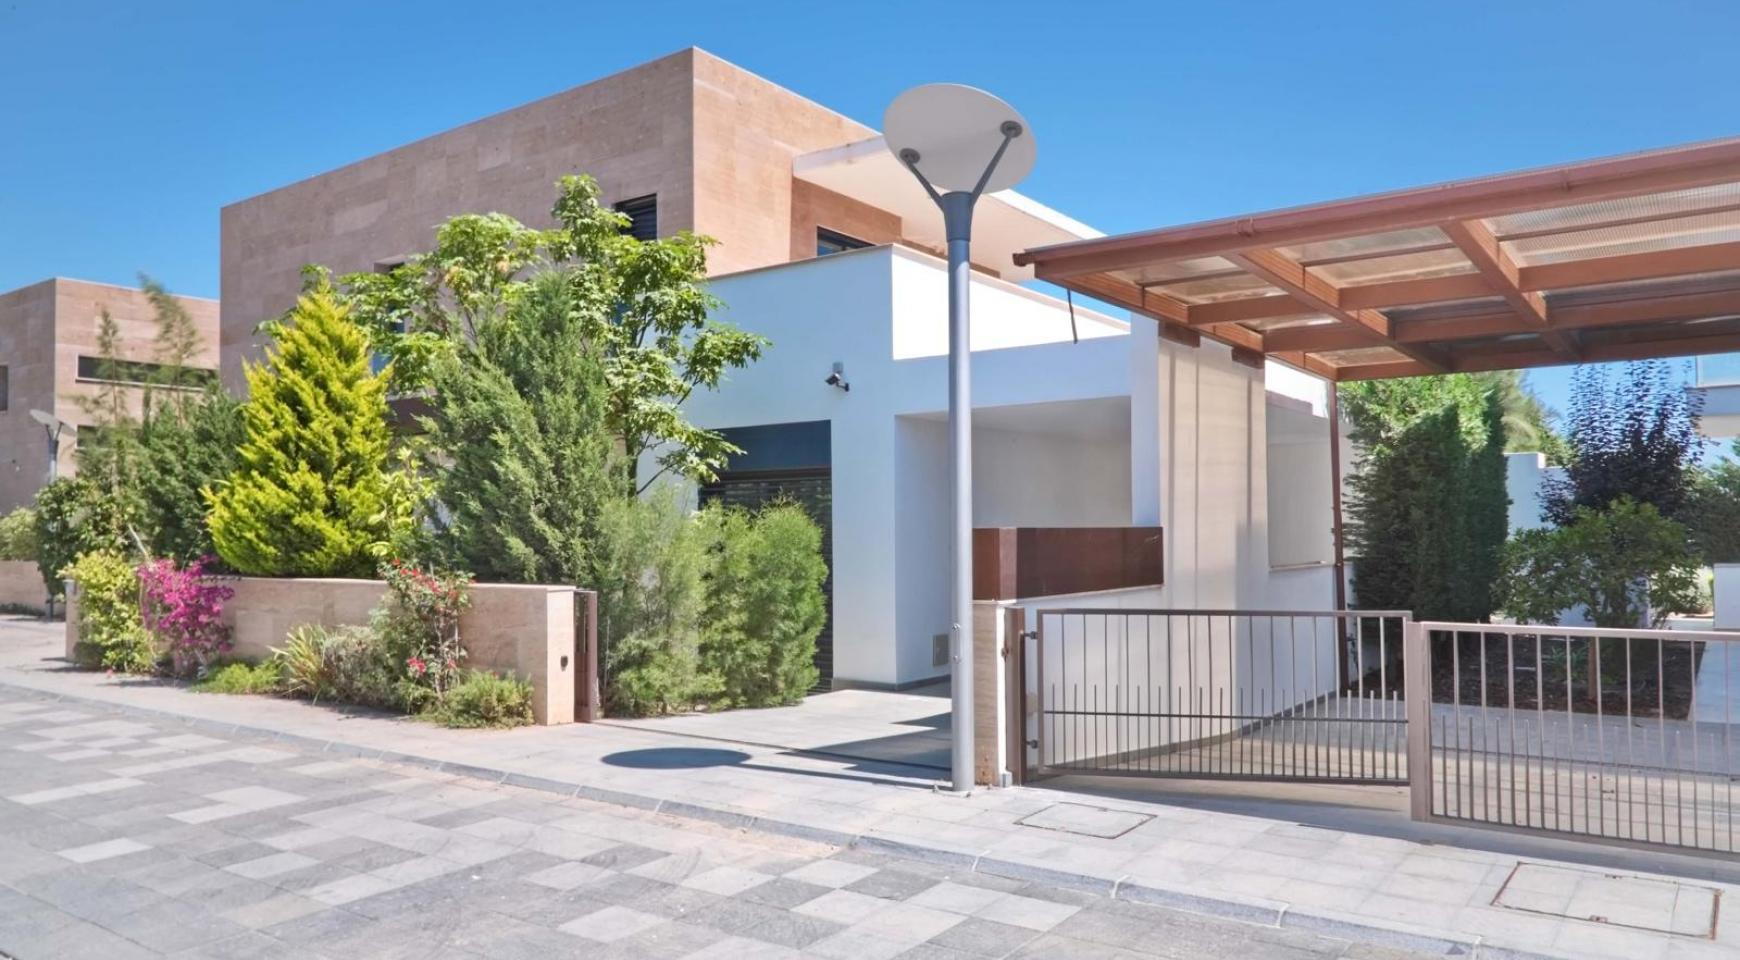 New Luxurious 4 Bedroom Villa in the Tourist Area - 11